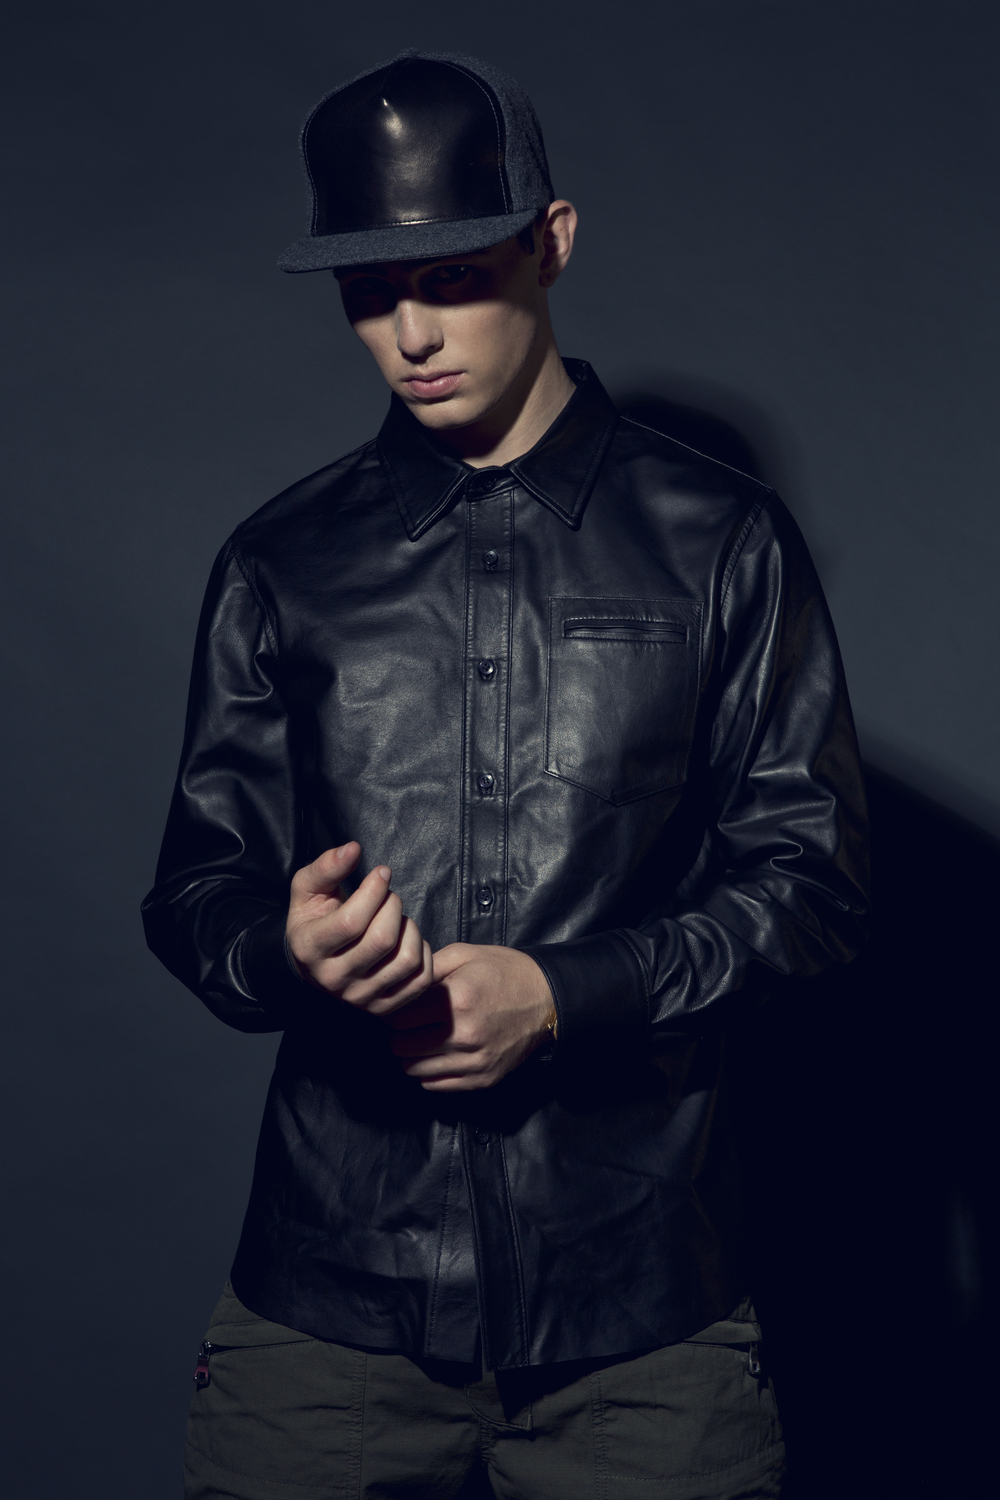 picture HSTRY Clothing: Nas x Grungy Gentleman